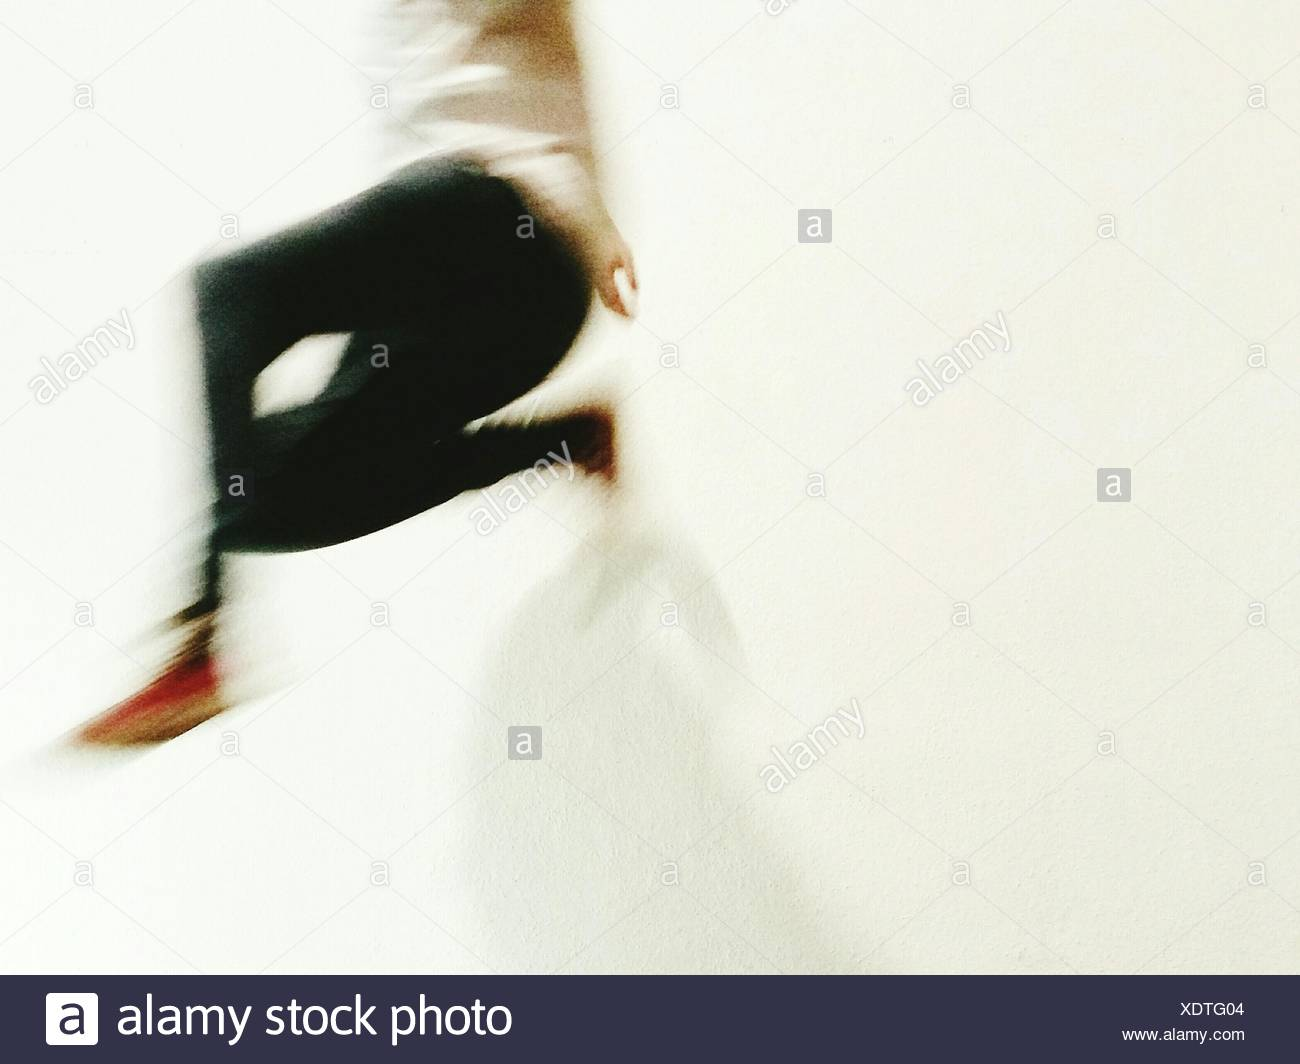 Blurred Image Of Person Jumping Against White Background - Stock Image